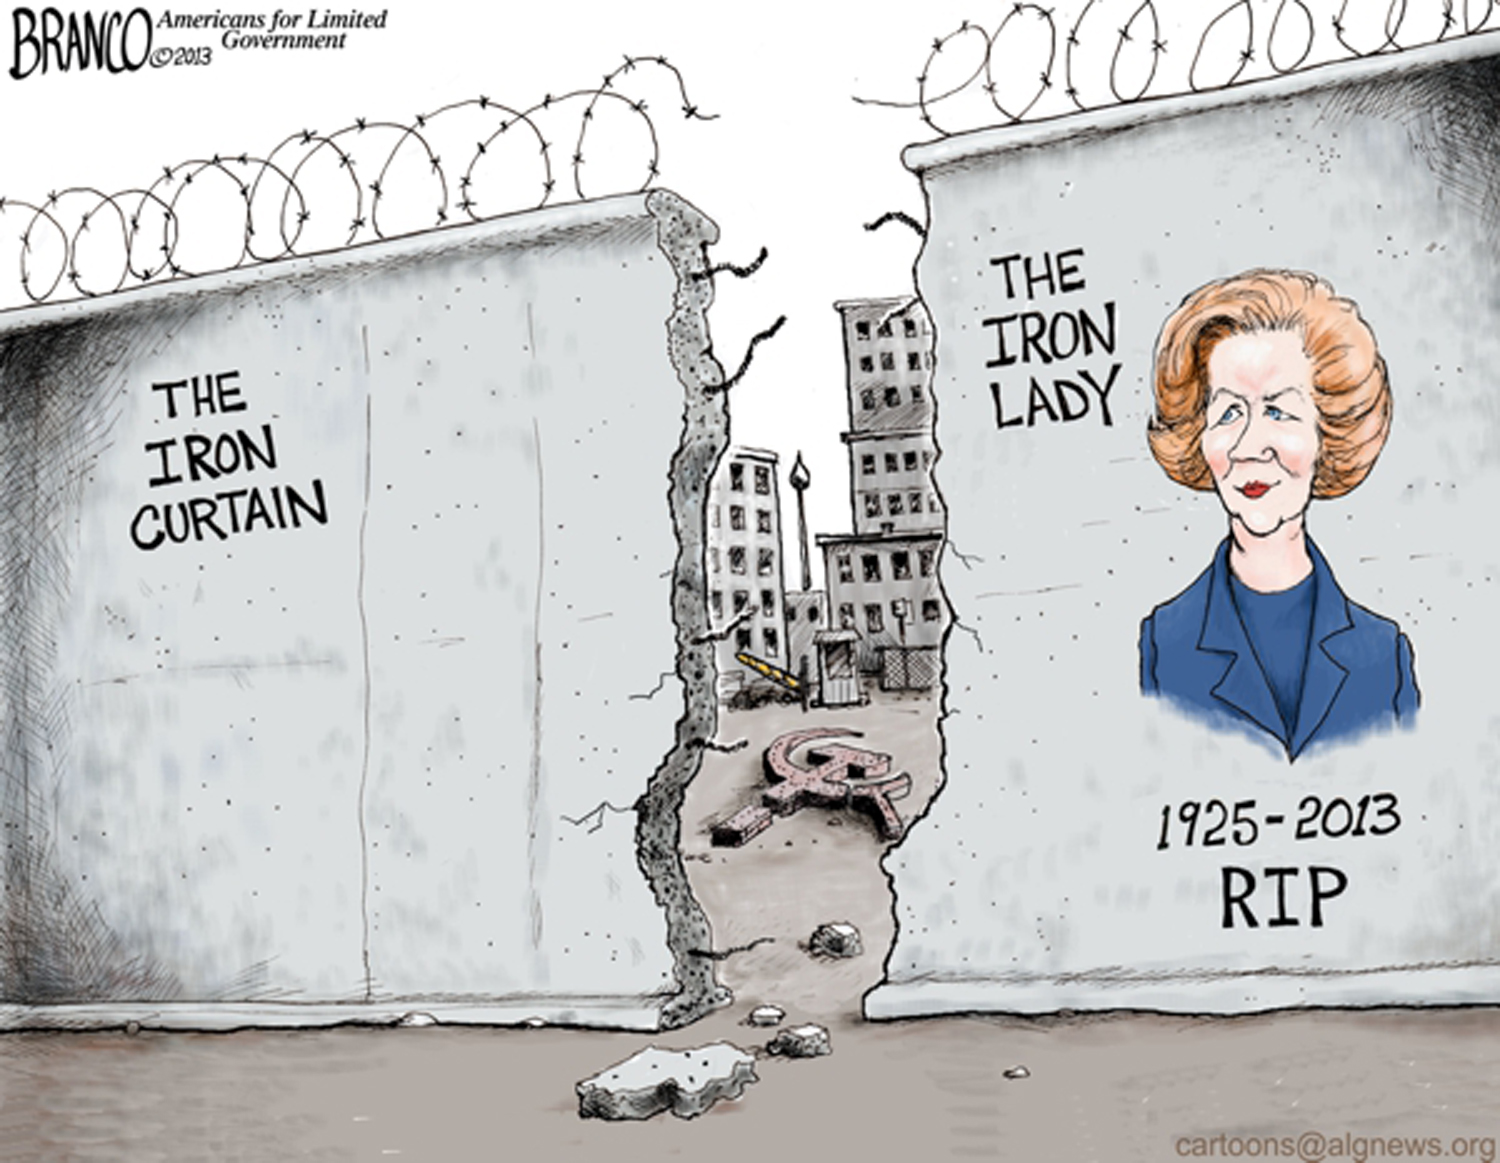 The Iron Lady Vs. The Iron Curtain